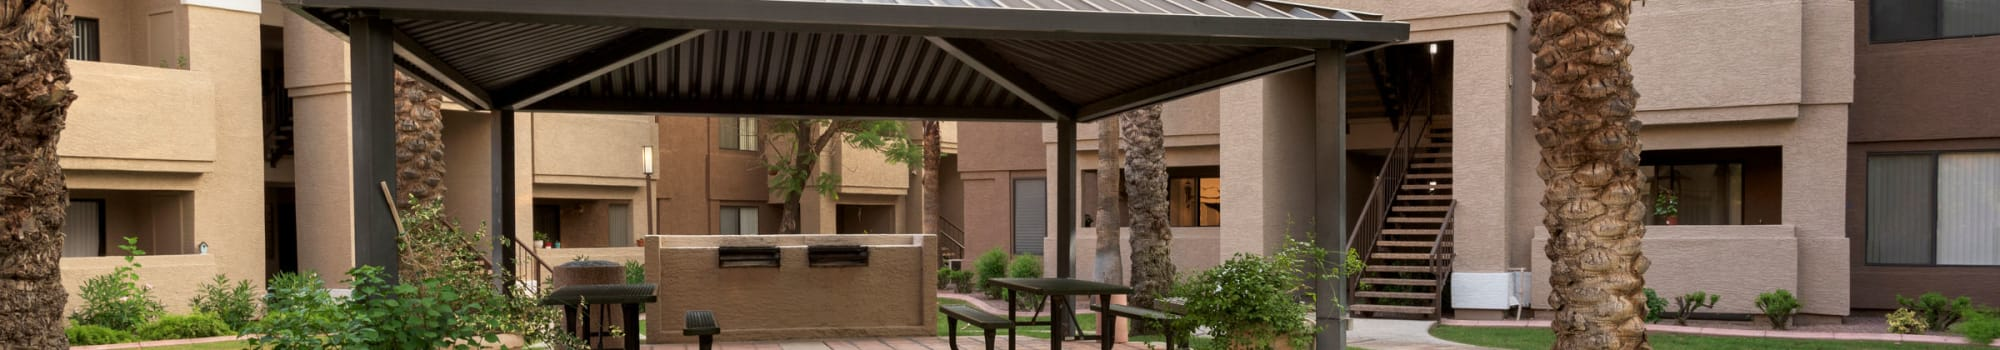 Guest suites at The Palisades at Paradise Valley Mall in Phoenix, Arizona